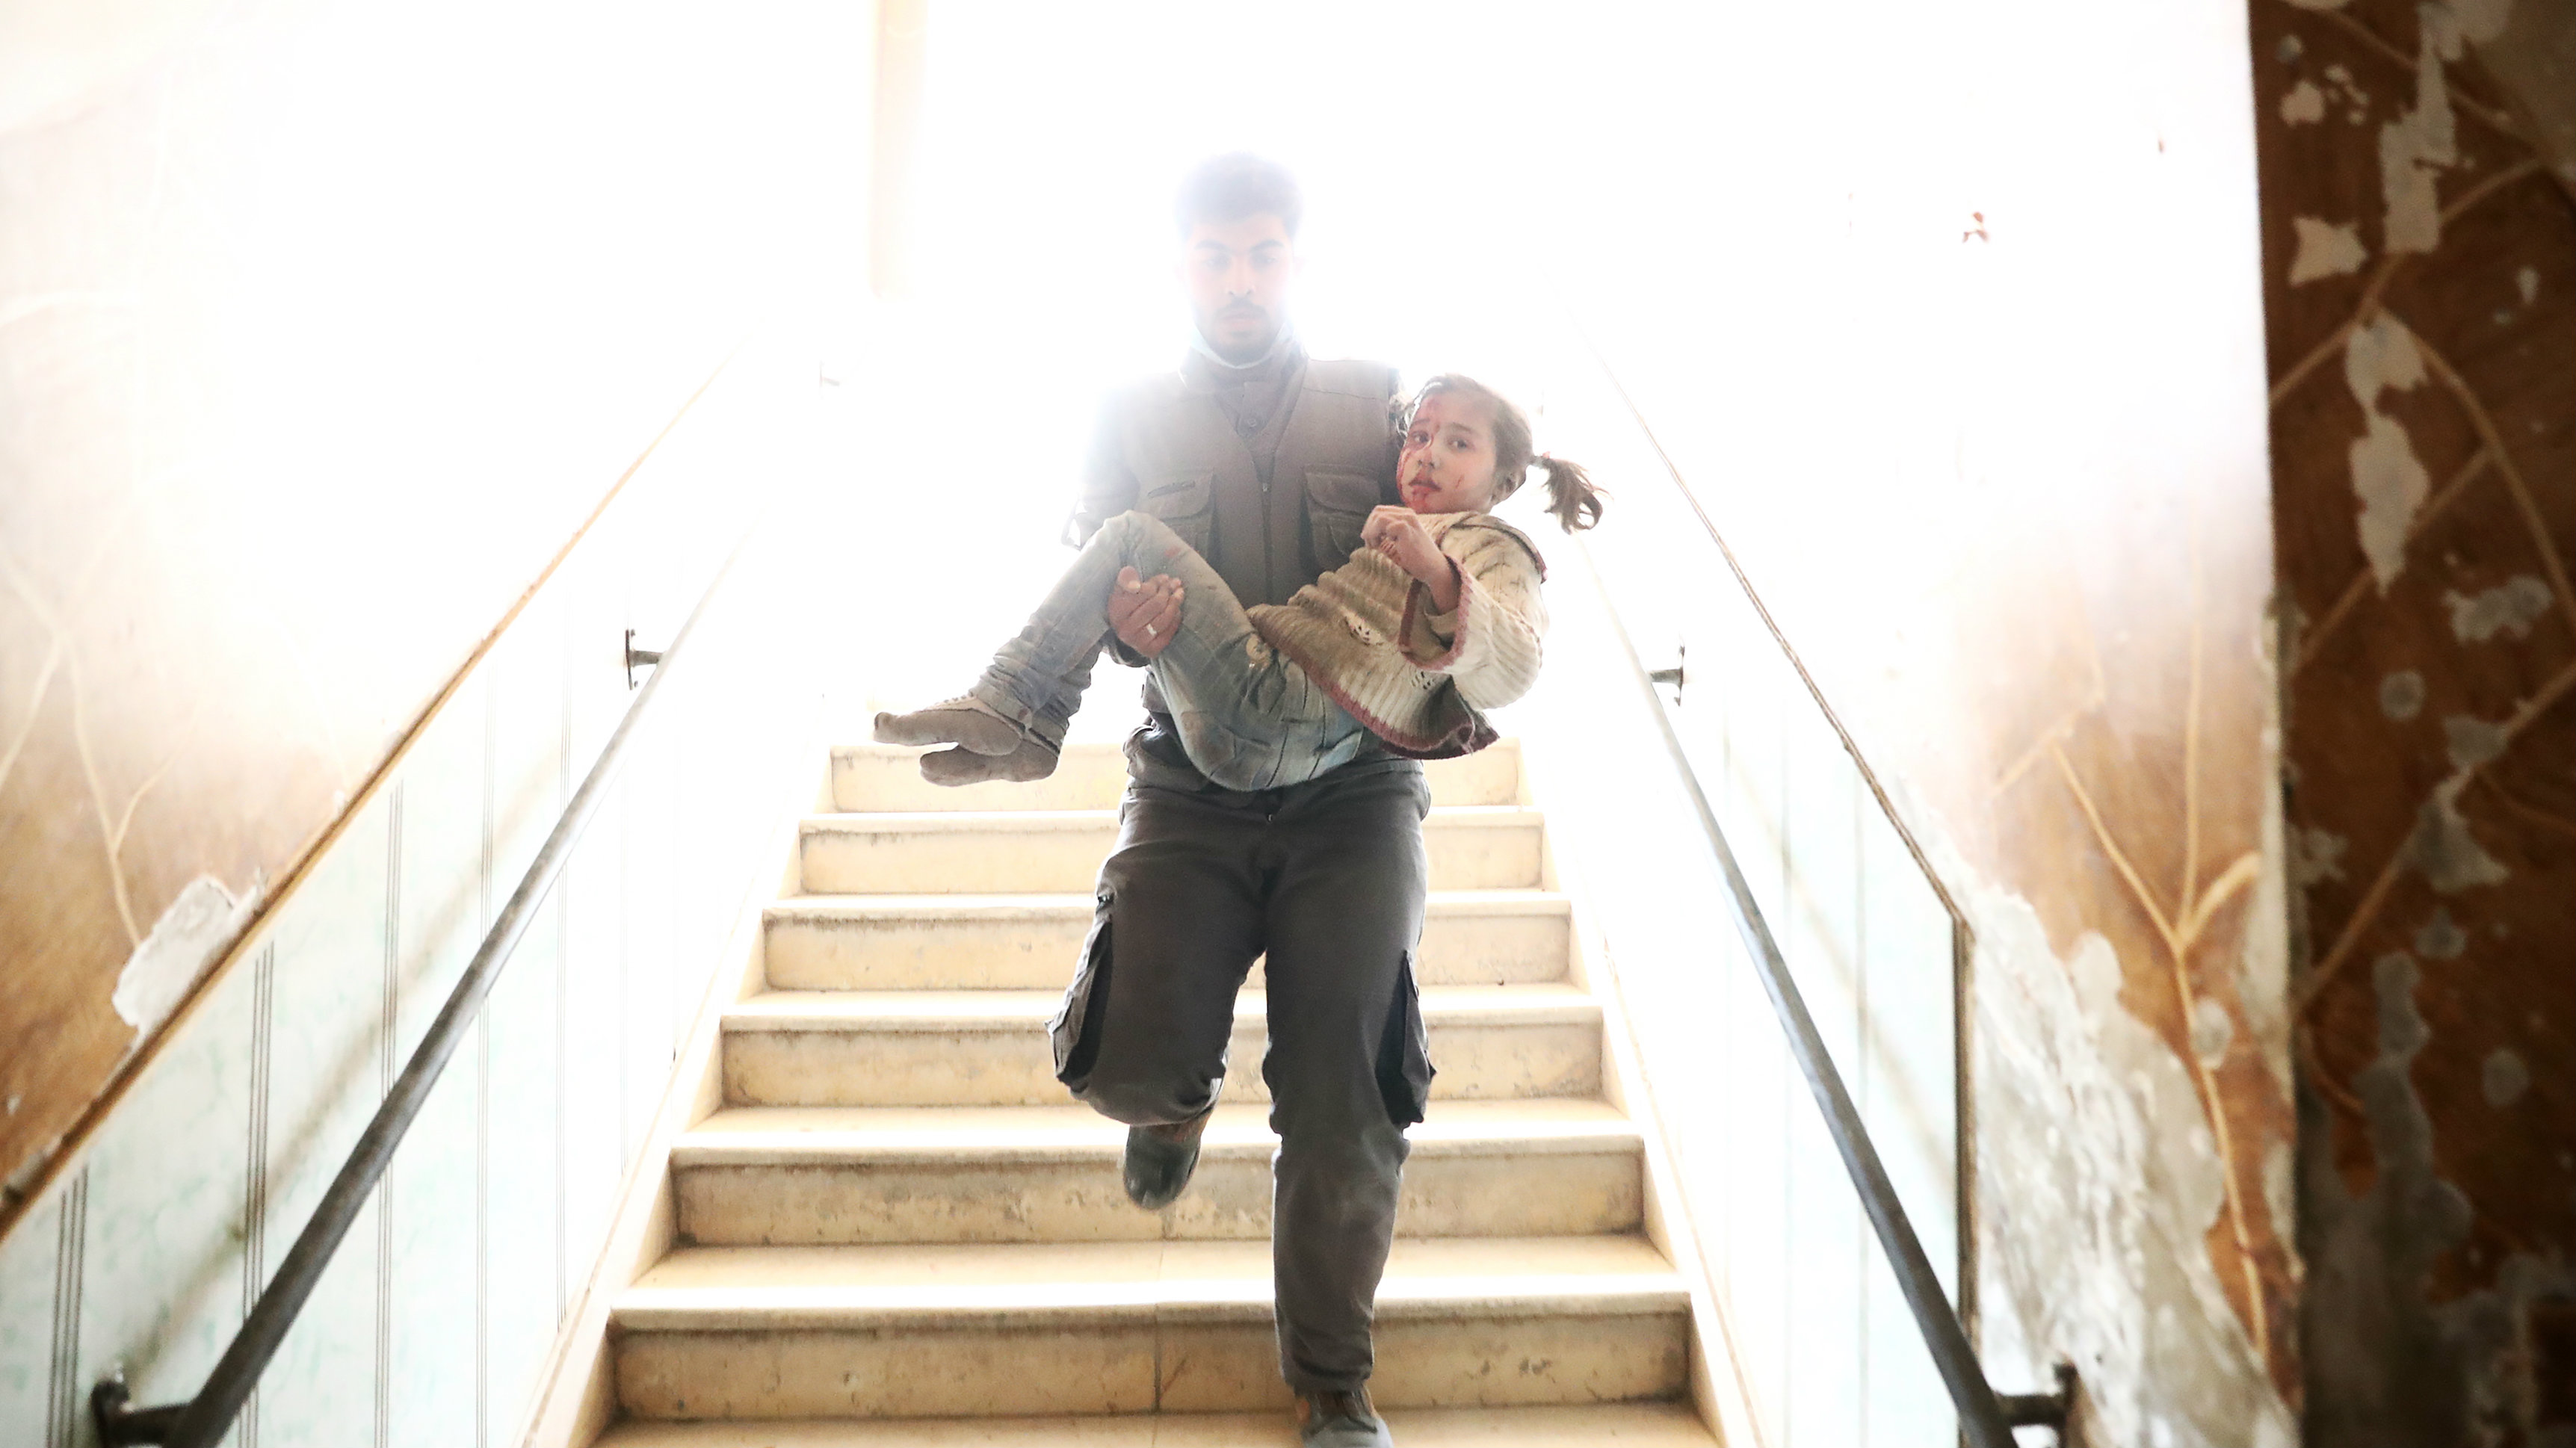 TOPSHOT - A Syrian civil defence volunteer carries a wounded girl as he rushes to a make-shift hospital following reported government airstrike on the rebel-held town of Douma, on the eastern outskirts of the capital Damascus, on February 25, 2017. Syrian regime forces carried out raids on several areas in the country, targeting mainly the besieged town of Douma, causing the deaths of at least 13 civilians, according to Syrian Observatory for Human Rights. The raids continued despite the United Nations confirmation a few days earlier that Moscow formally asked its ally Damascus to stop launching strikes during the Geneva negotiations, which began earlier in the week. / AFP / Abd Doumany (Photo credit should read ABD DOUMANY/AFP/Getty Images)